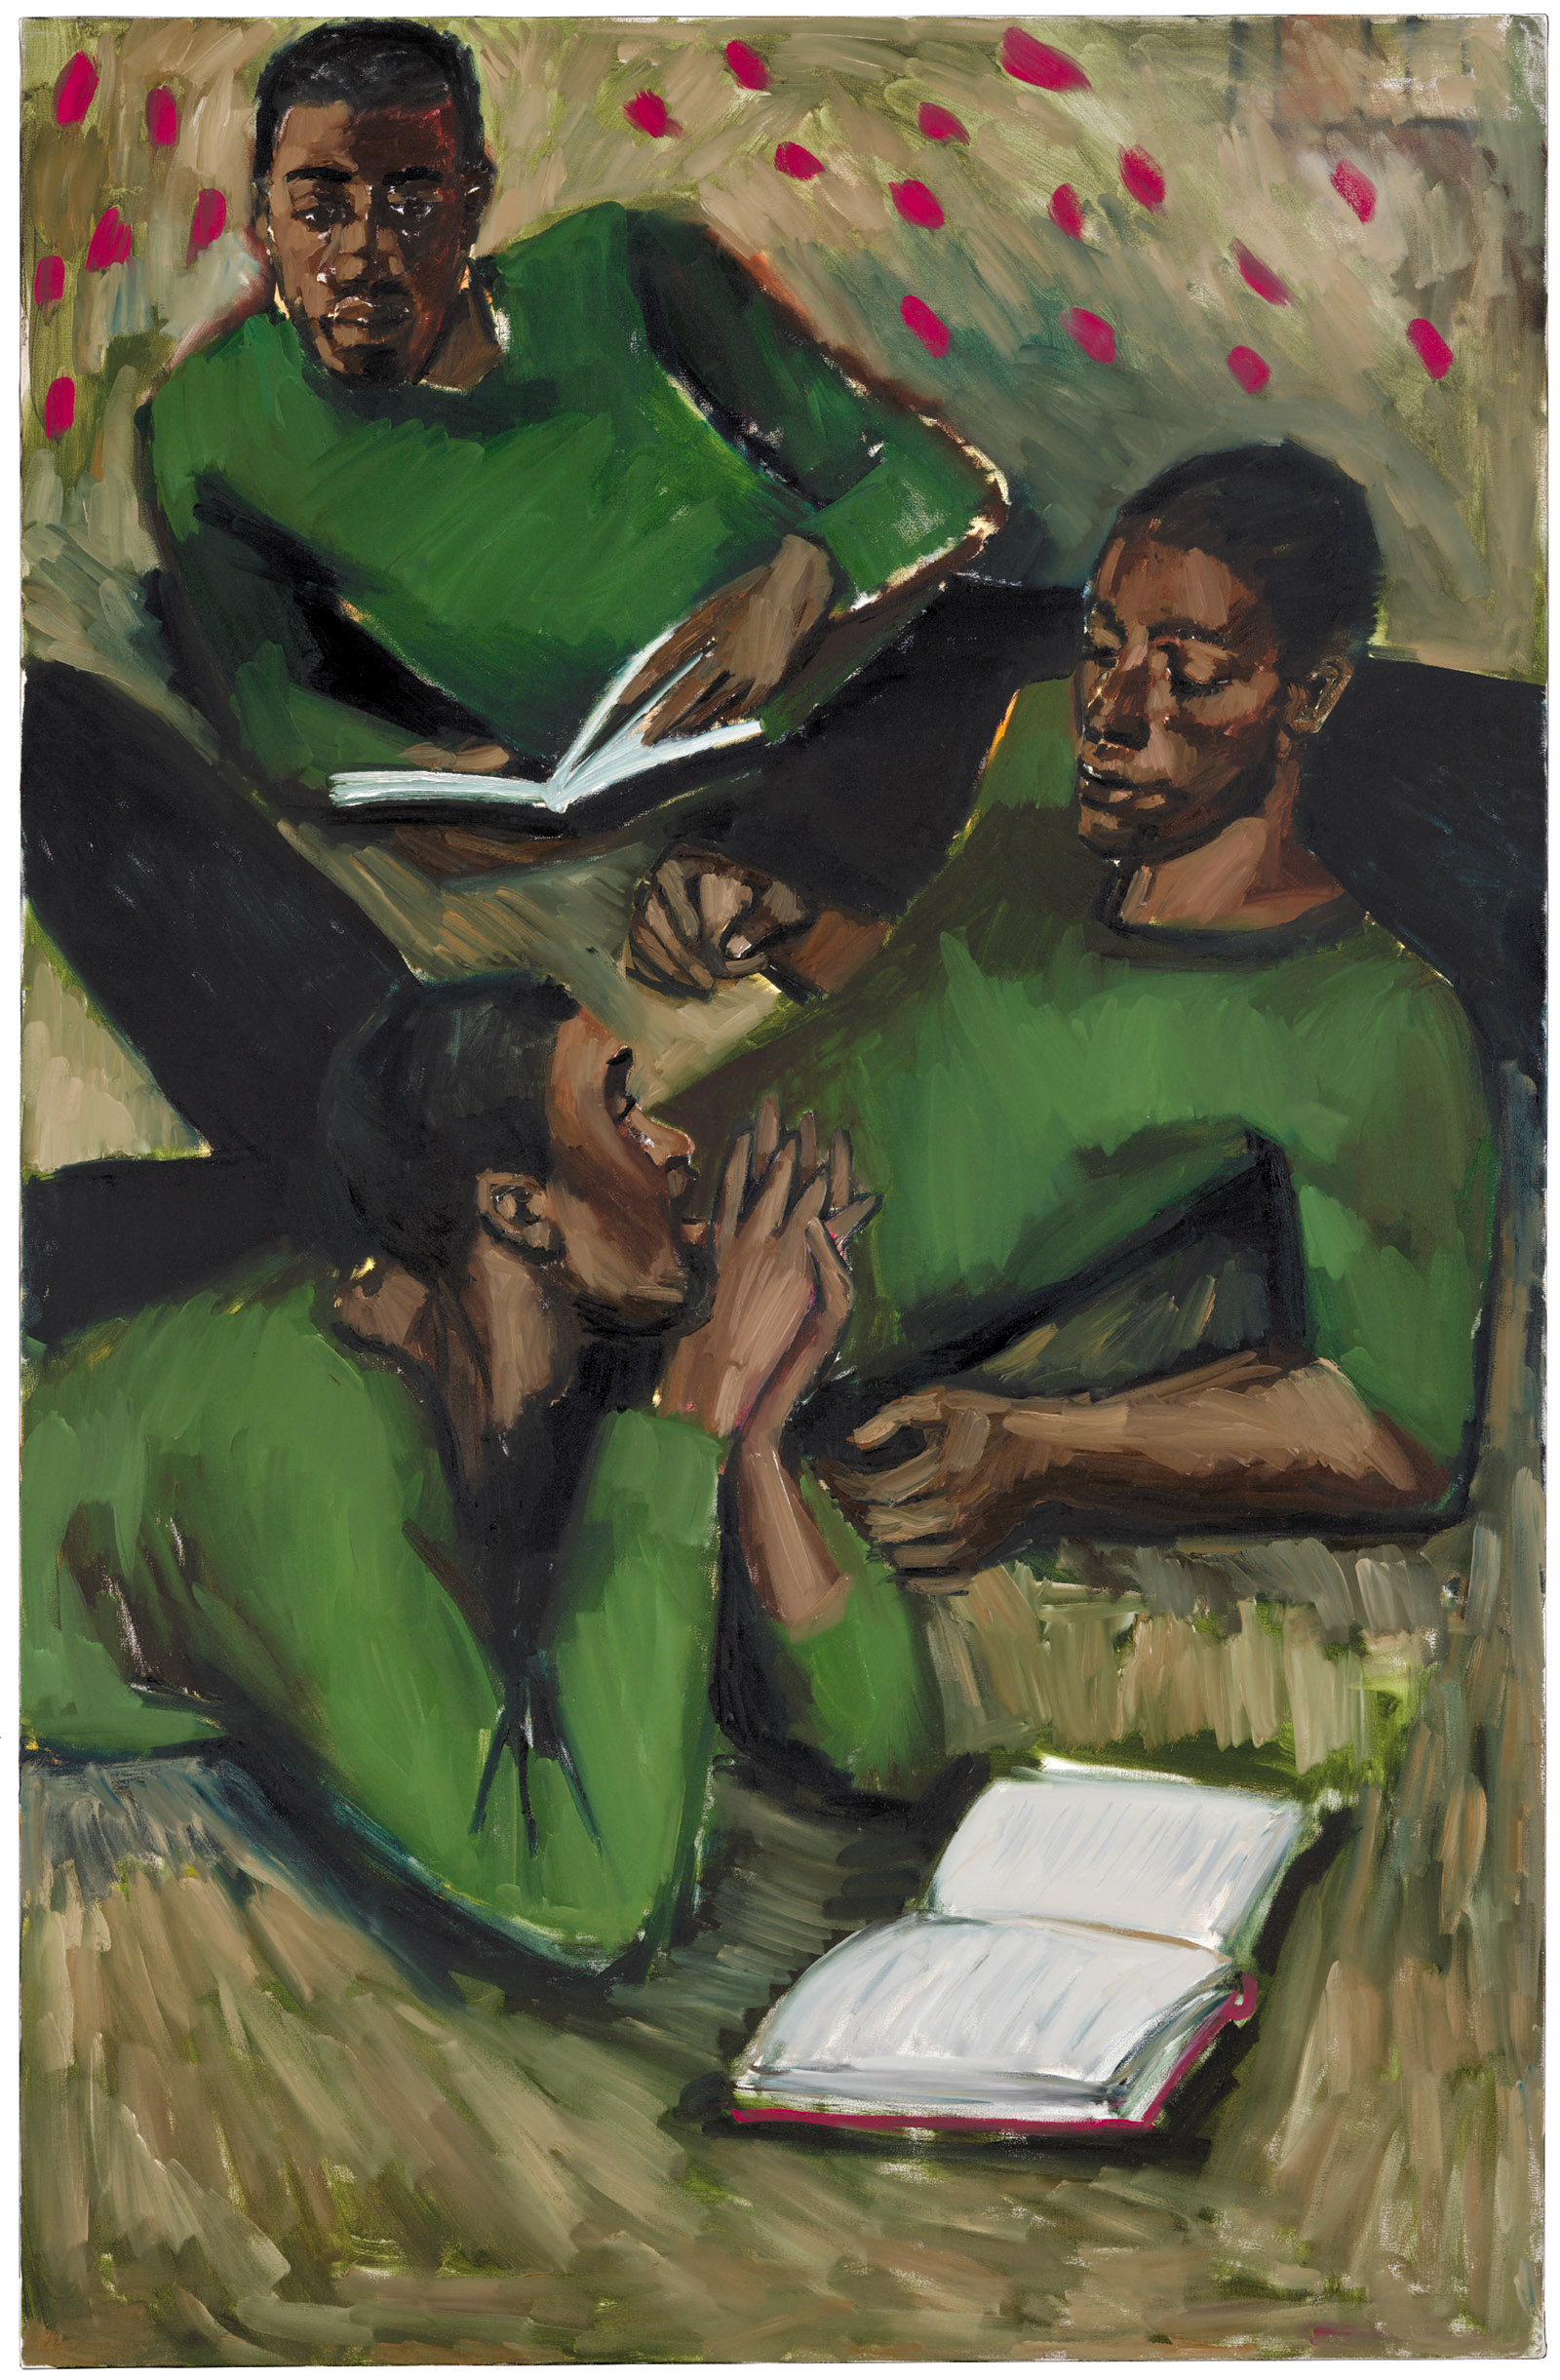 To Reason with Heathen at Harvest, a painting by Lynette Yiadom-Boakye